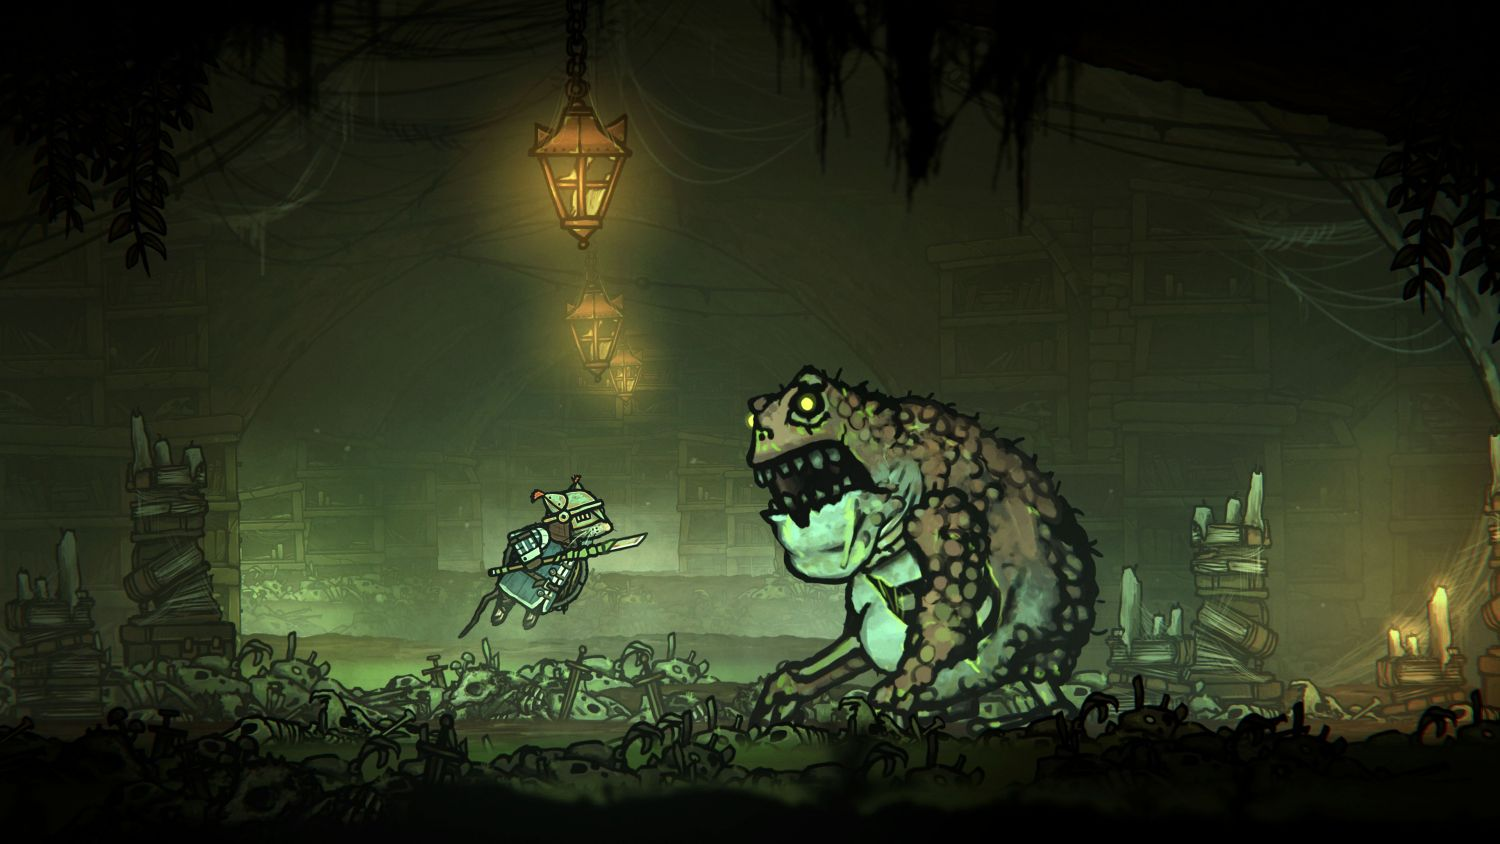 Geek Review: Tails of Iron - Frogs are a nightmare